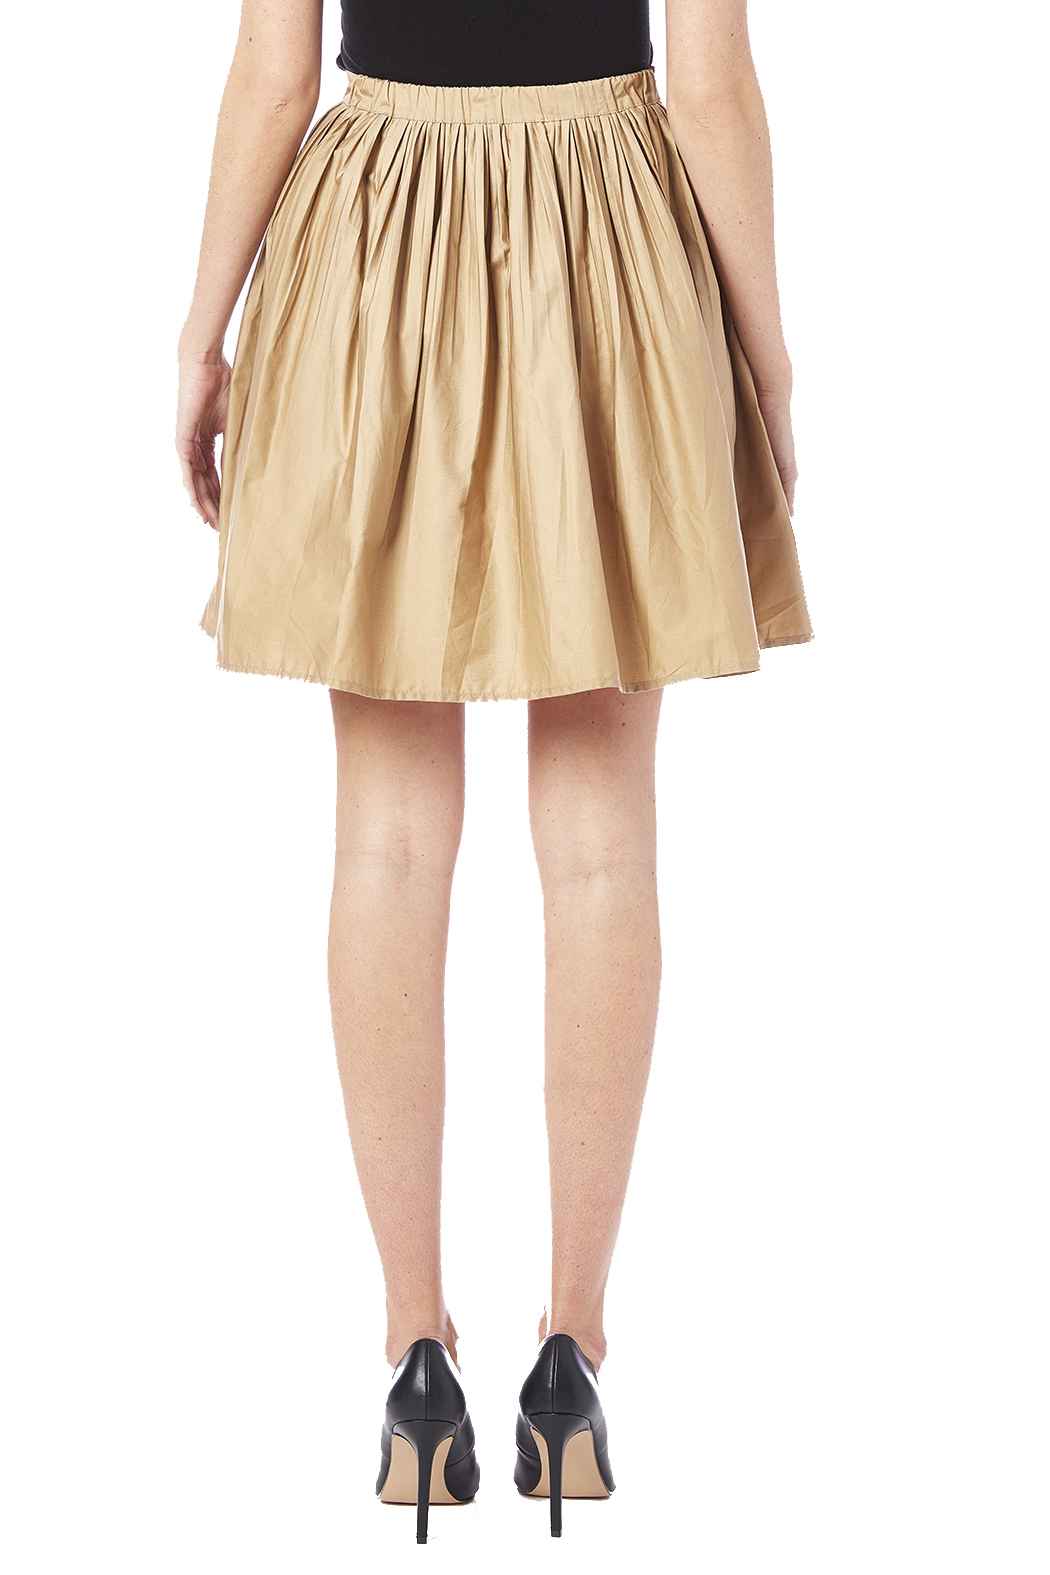 NU New York Beige Skirt - Back Cropped Image